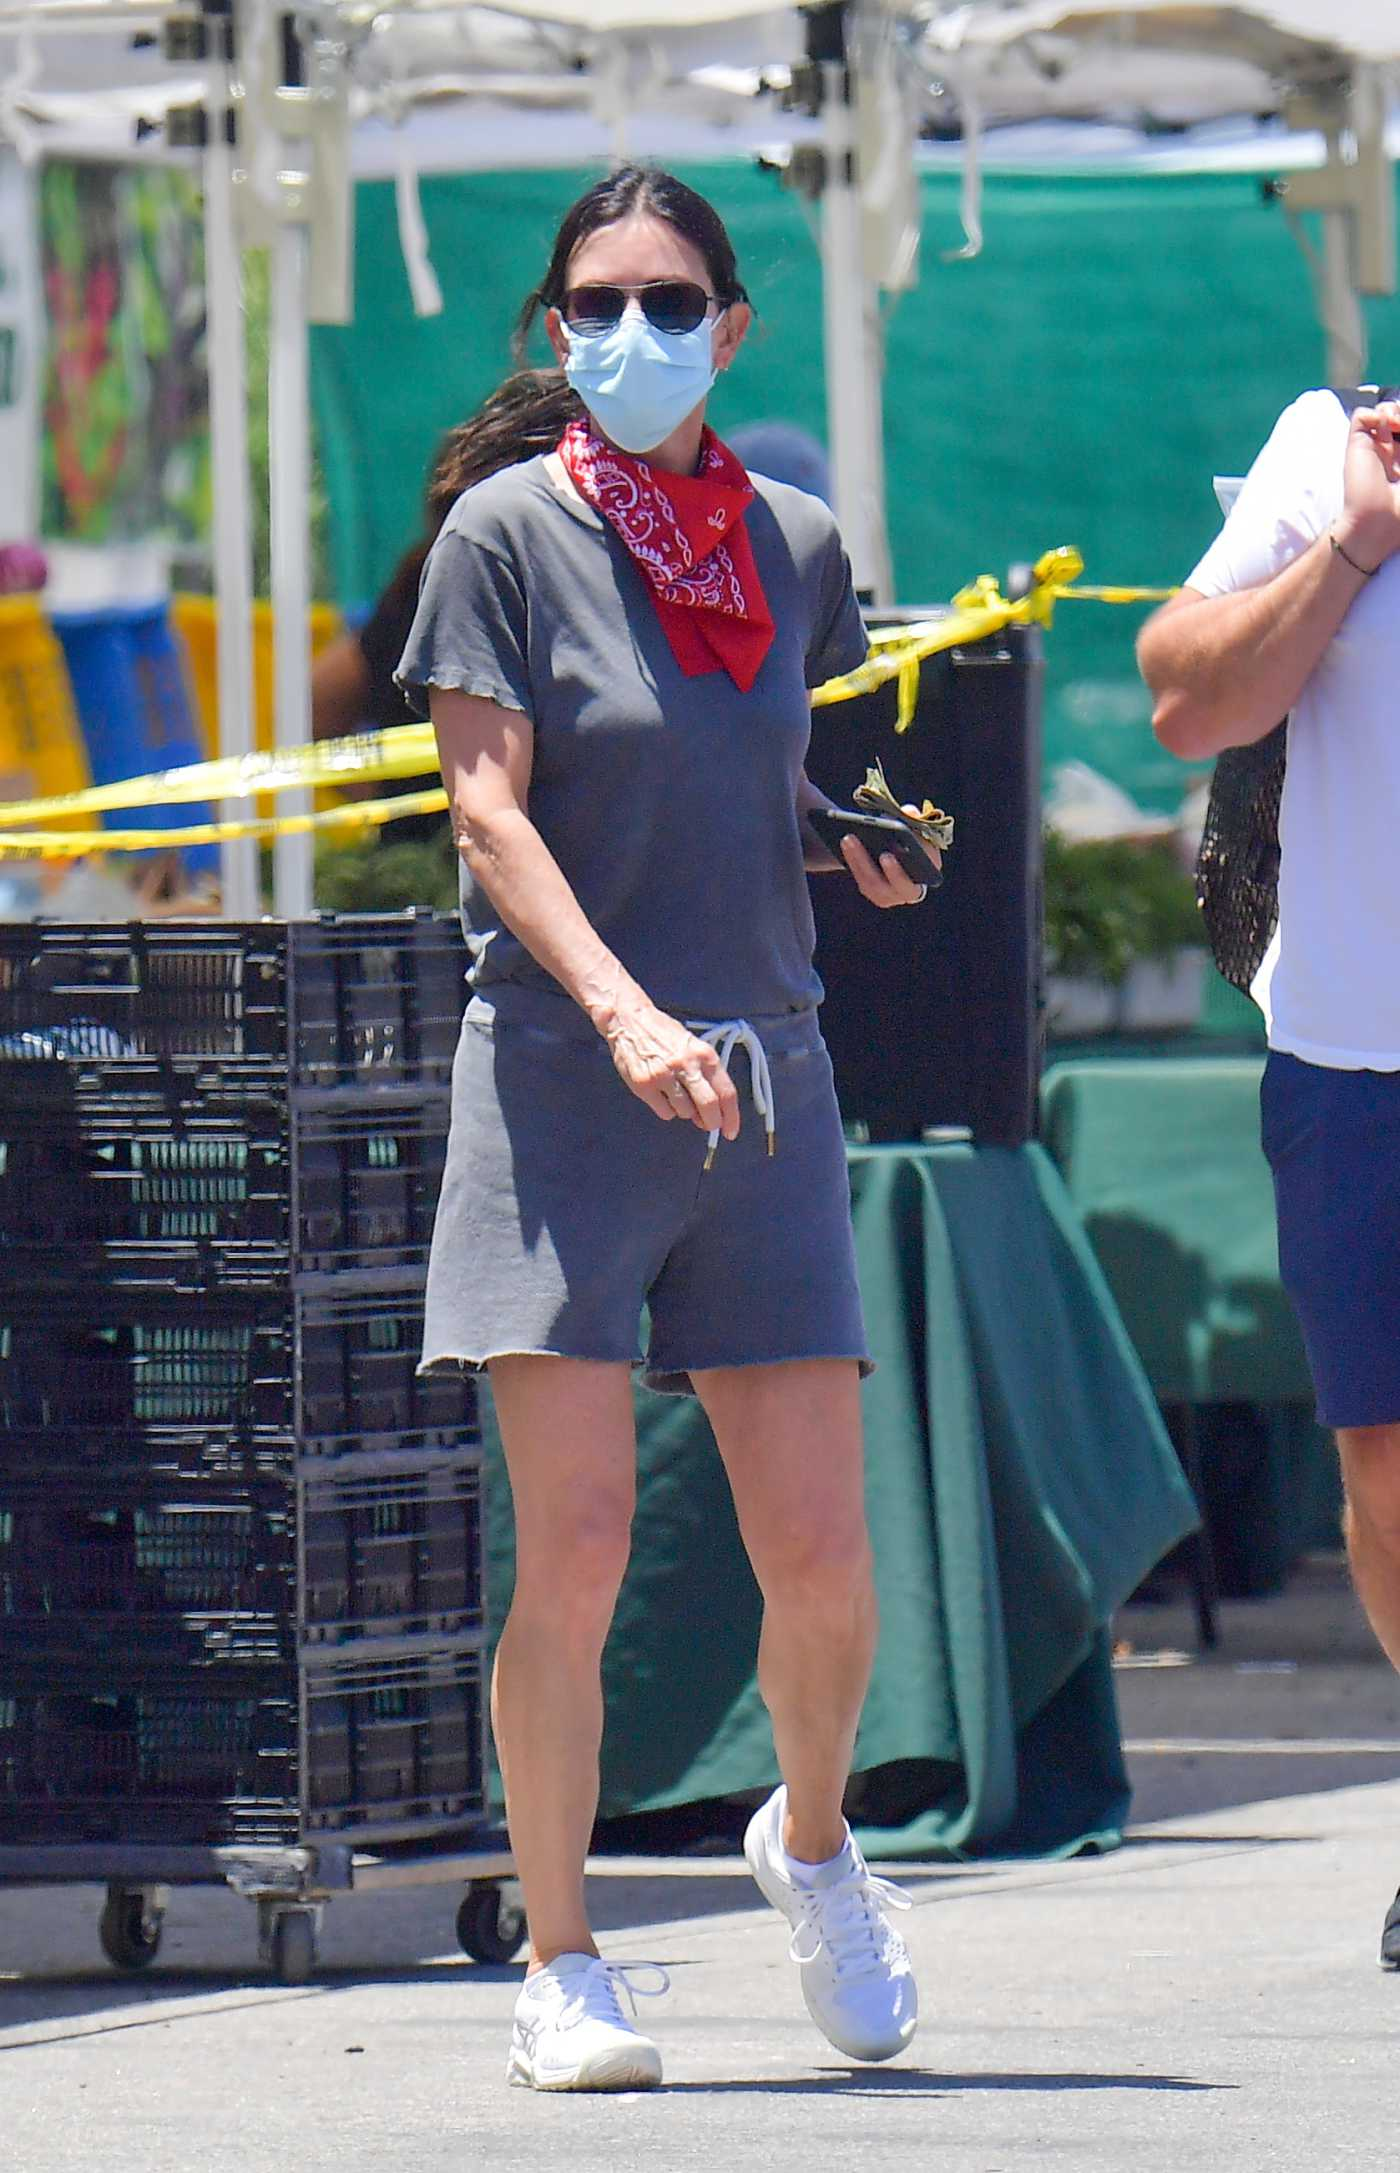 Courteney Cox in a Protective Mask Goes Shopping Out with Johnny McDaid at a Local Farmer's Market in Malibu 06/07/2020